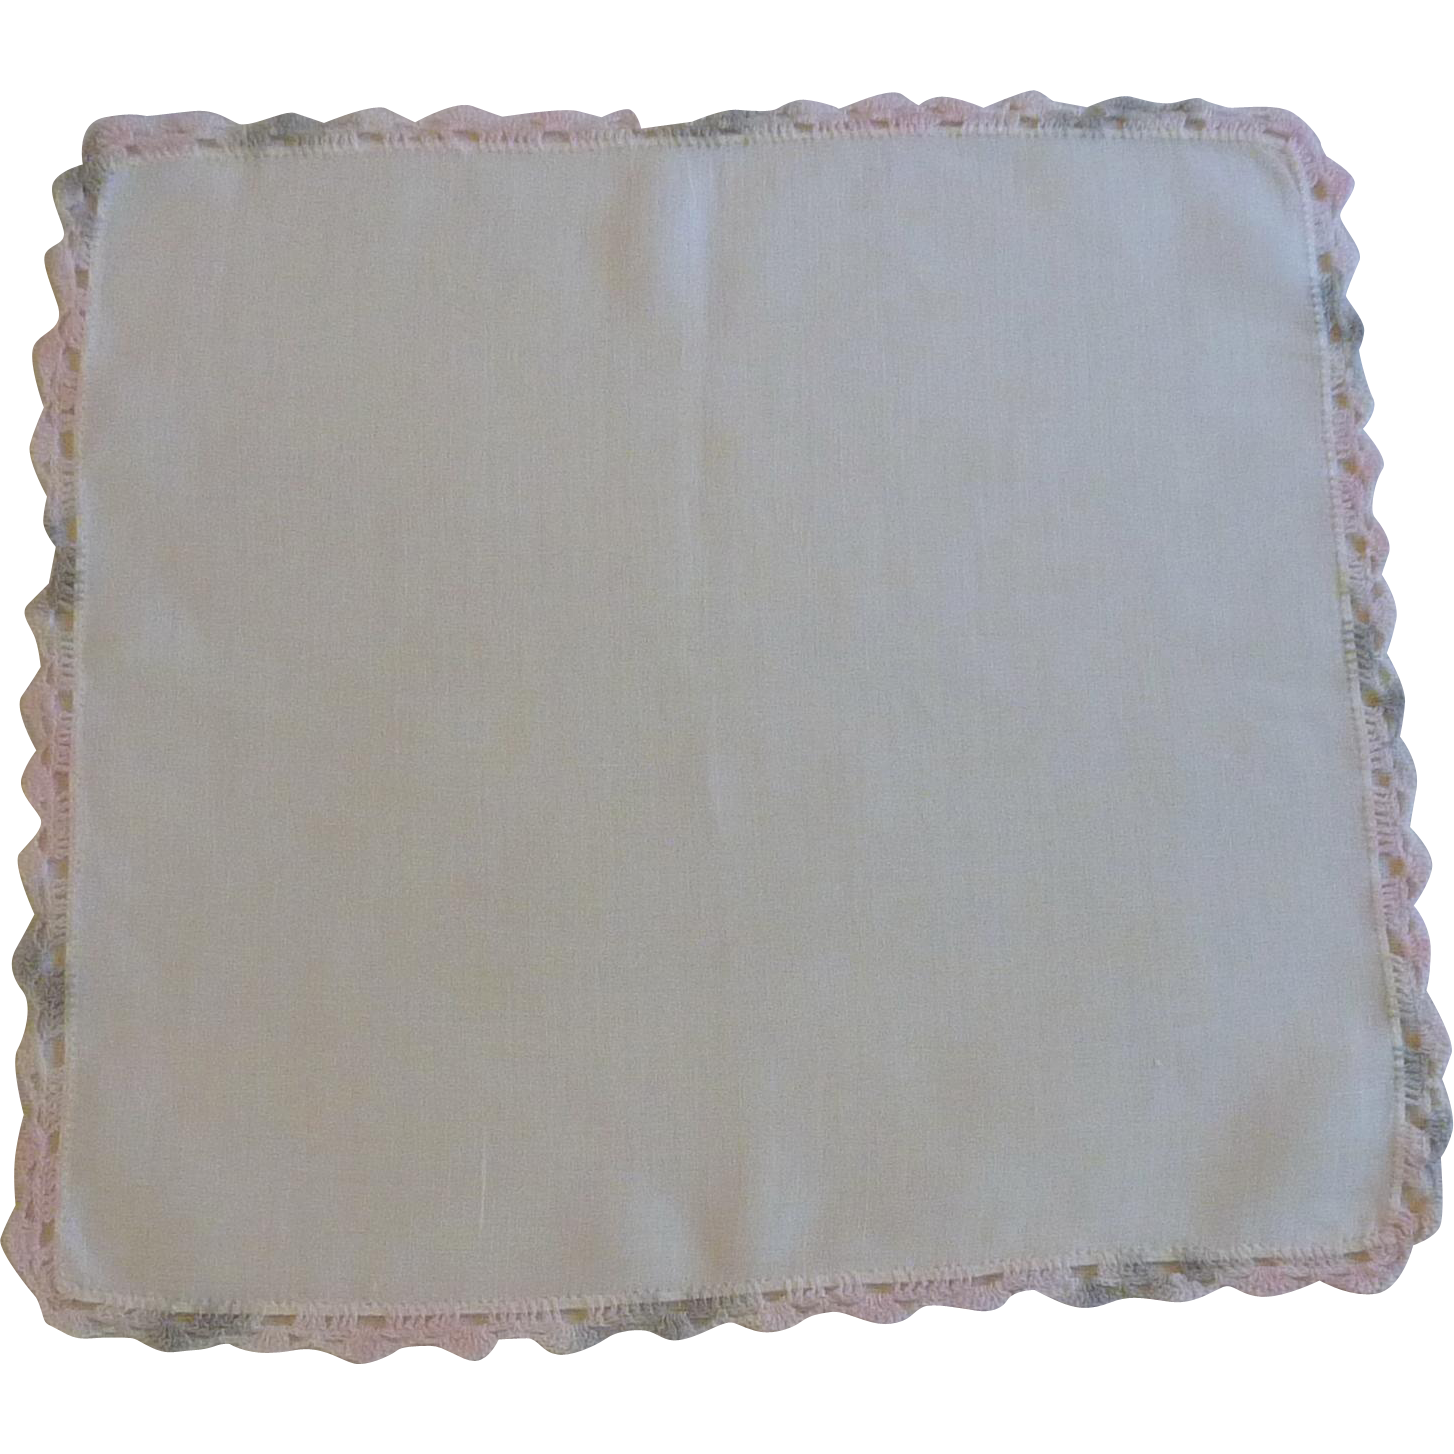 Grey Pink Tatted Border on White Linen Handkerchief